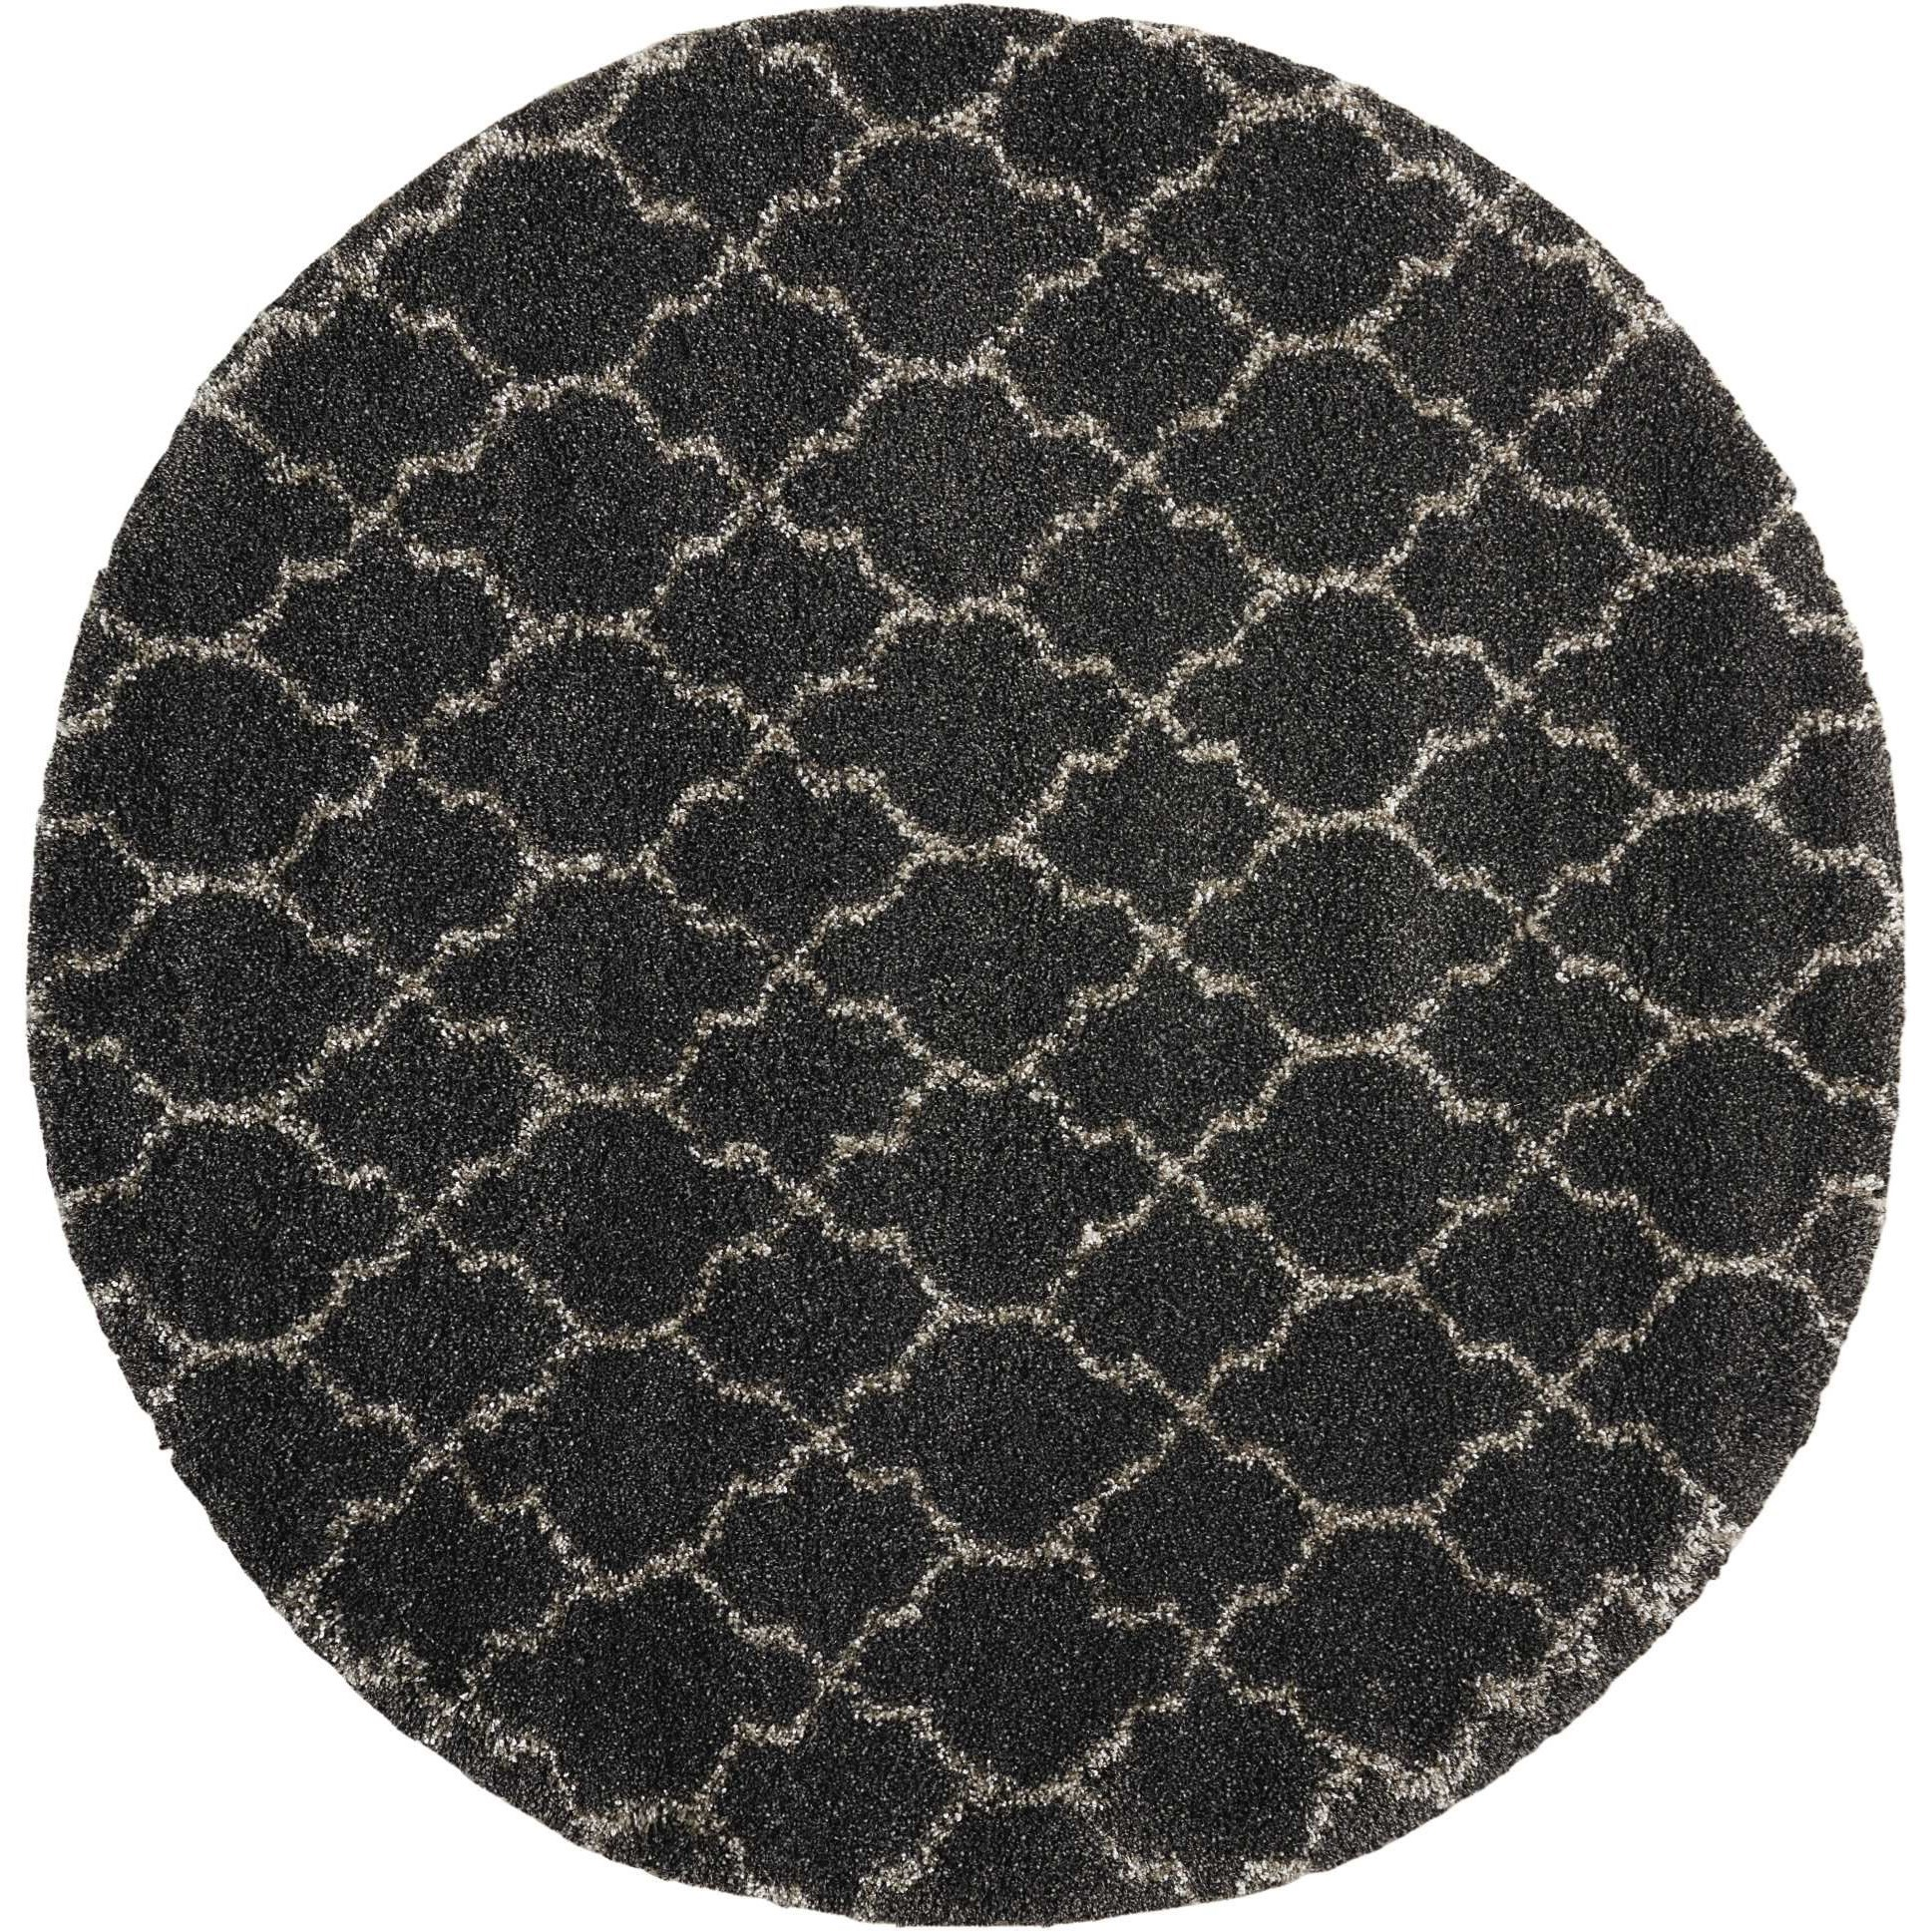 "Amore 6'7"" x 6'7"" Charcoal Round Rug by Nourison at Home Collections Furniture"